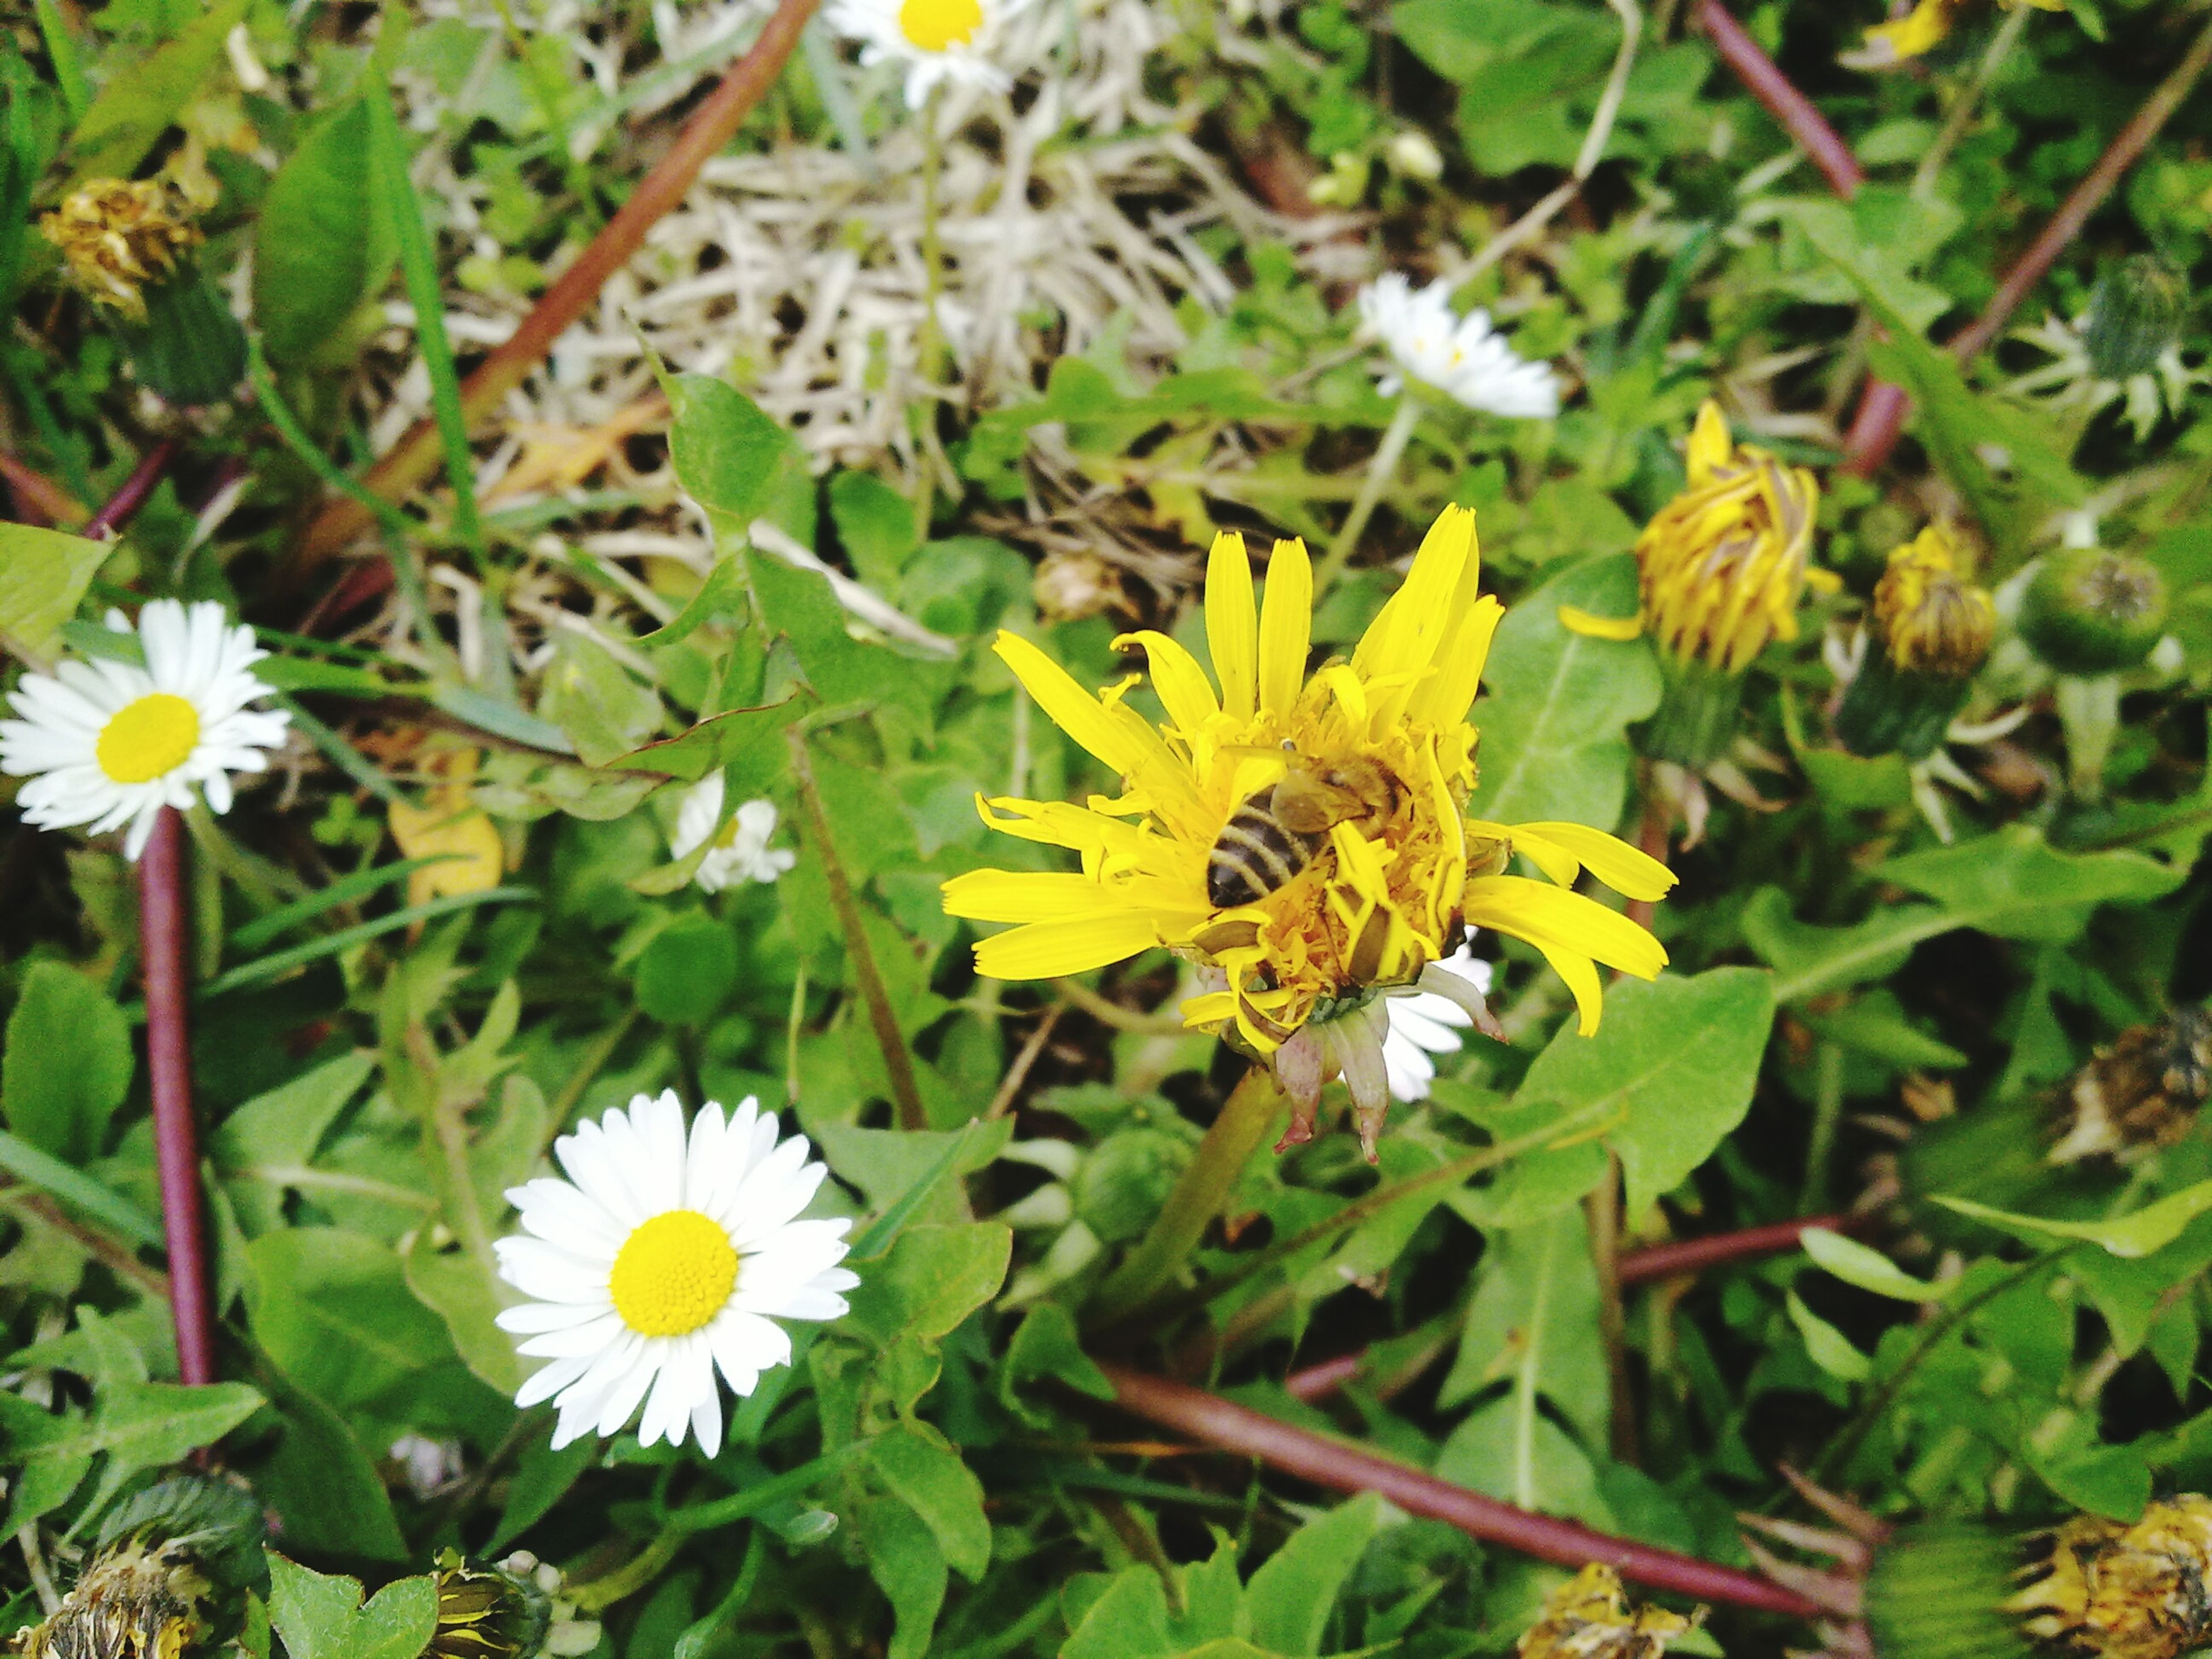 flower, insect, animal themes, one animal, animals in the wild, wildlife, freshness, petal, fragility, flower head, growth, pollination, yellow, beauty in nature, plant, daisy, bee, nature, high angle view, pollen